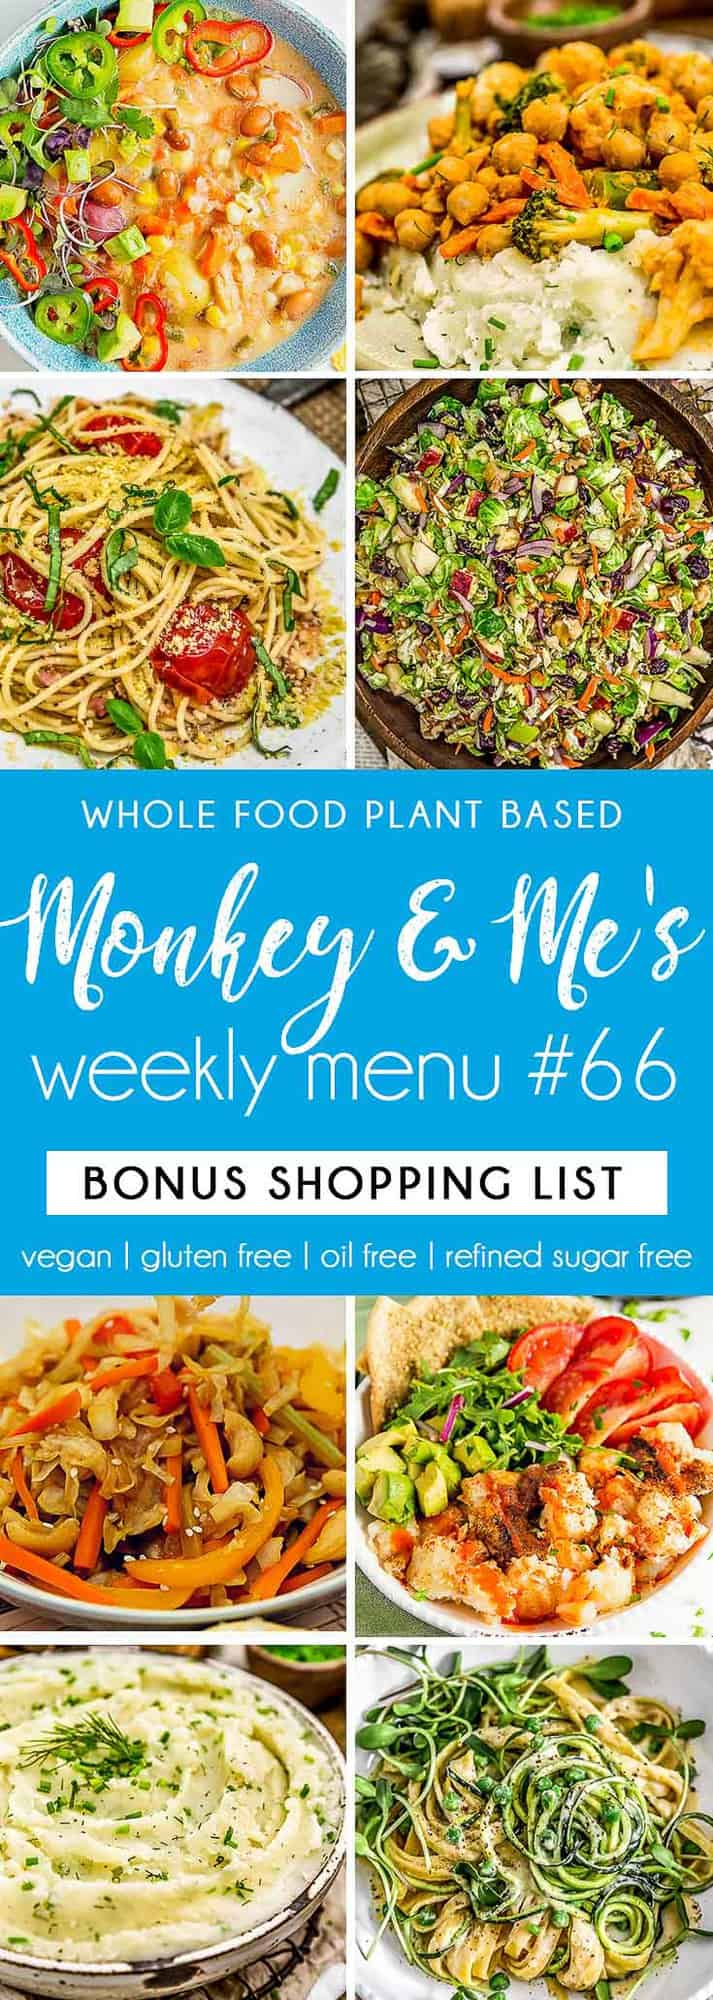 Monkey and Me's Menu 66 featuring 8 recipes